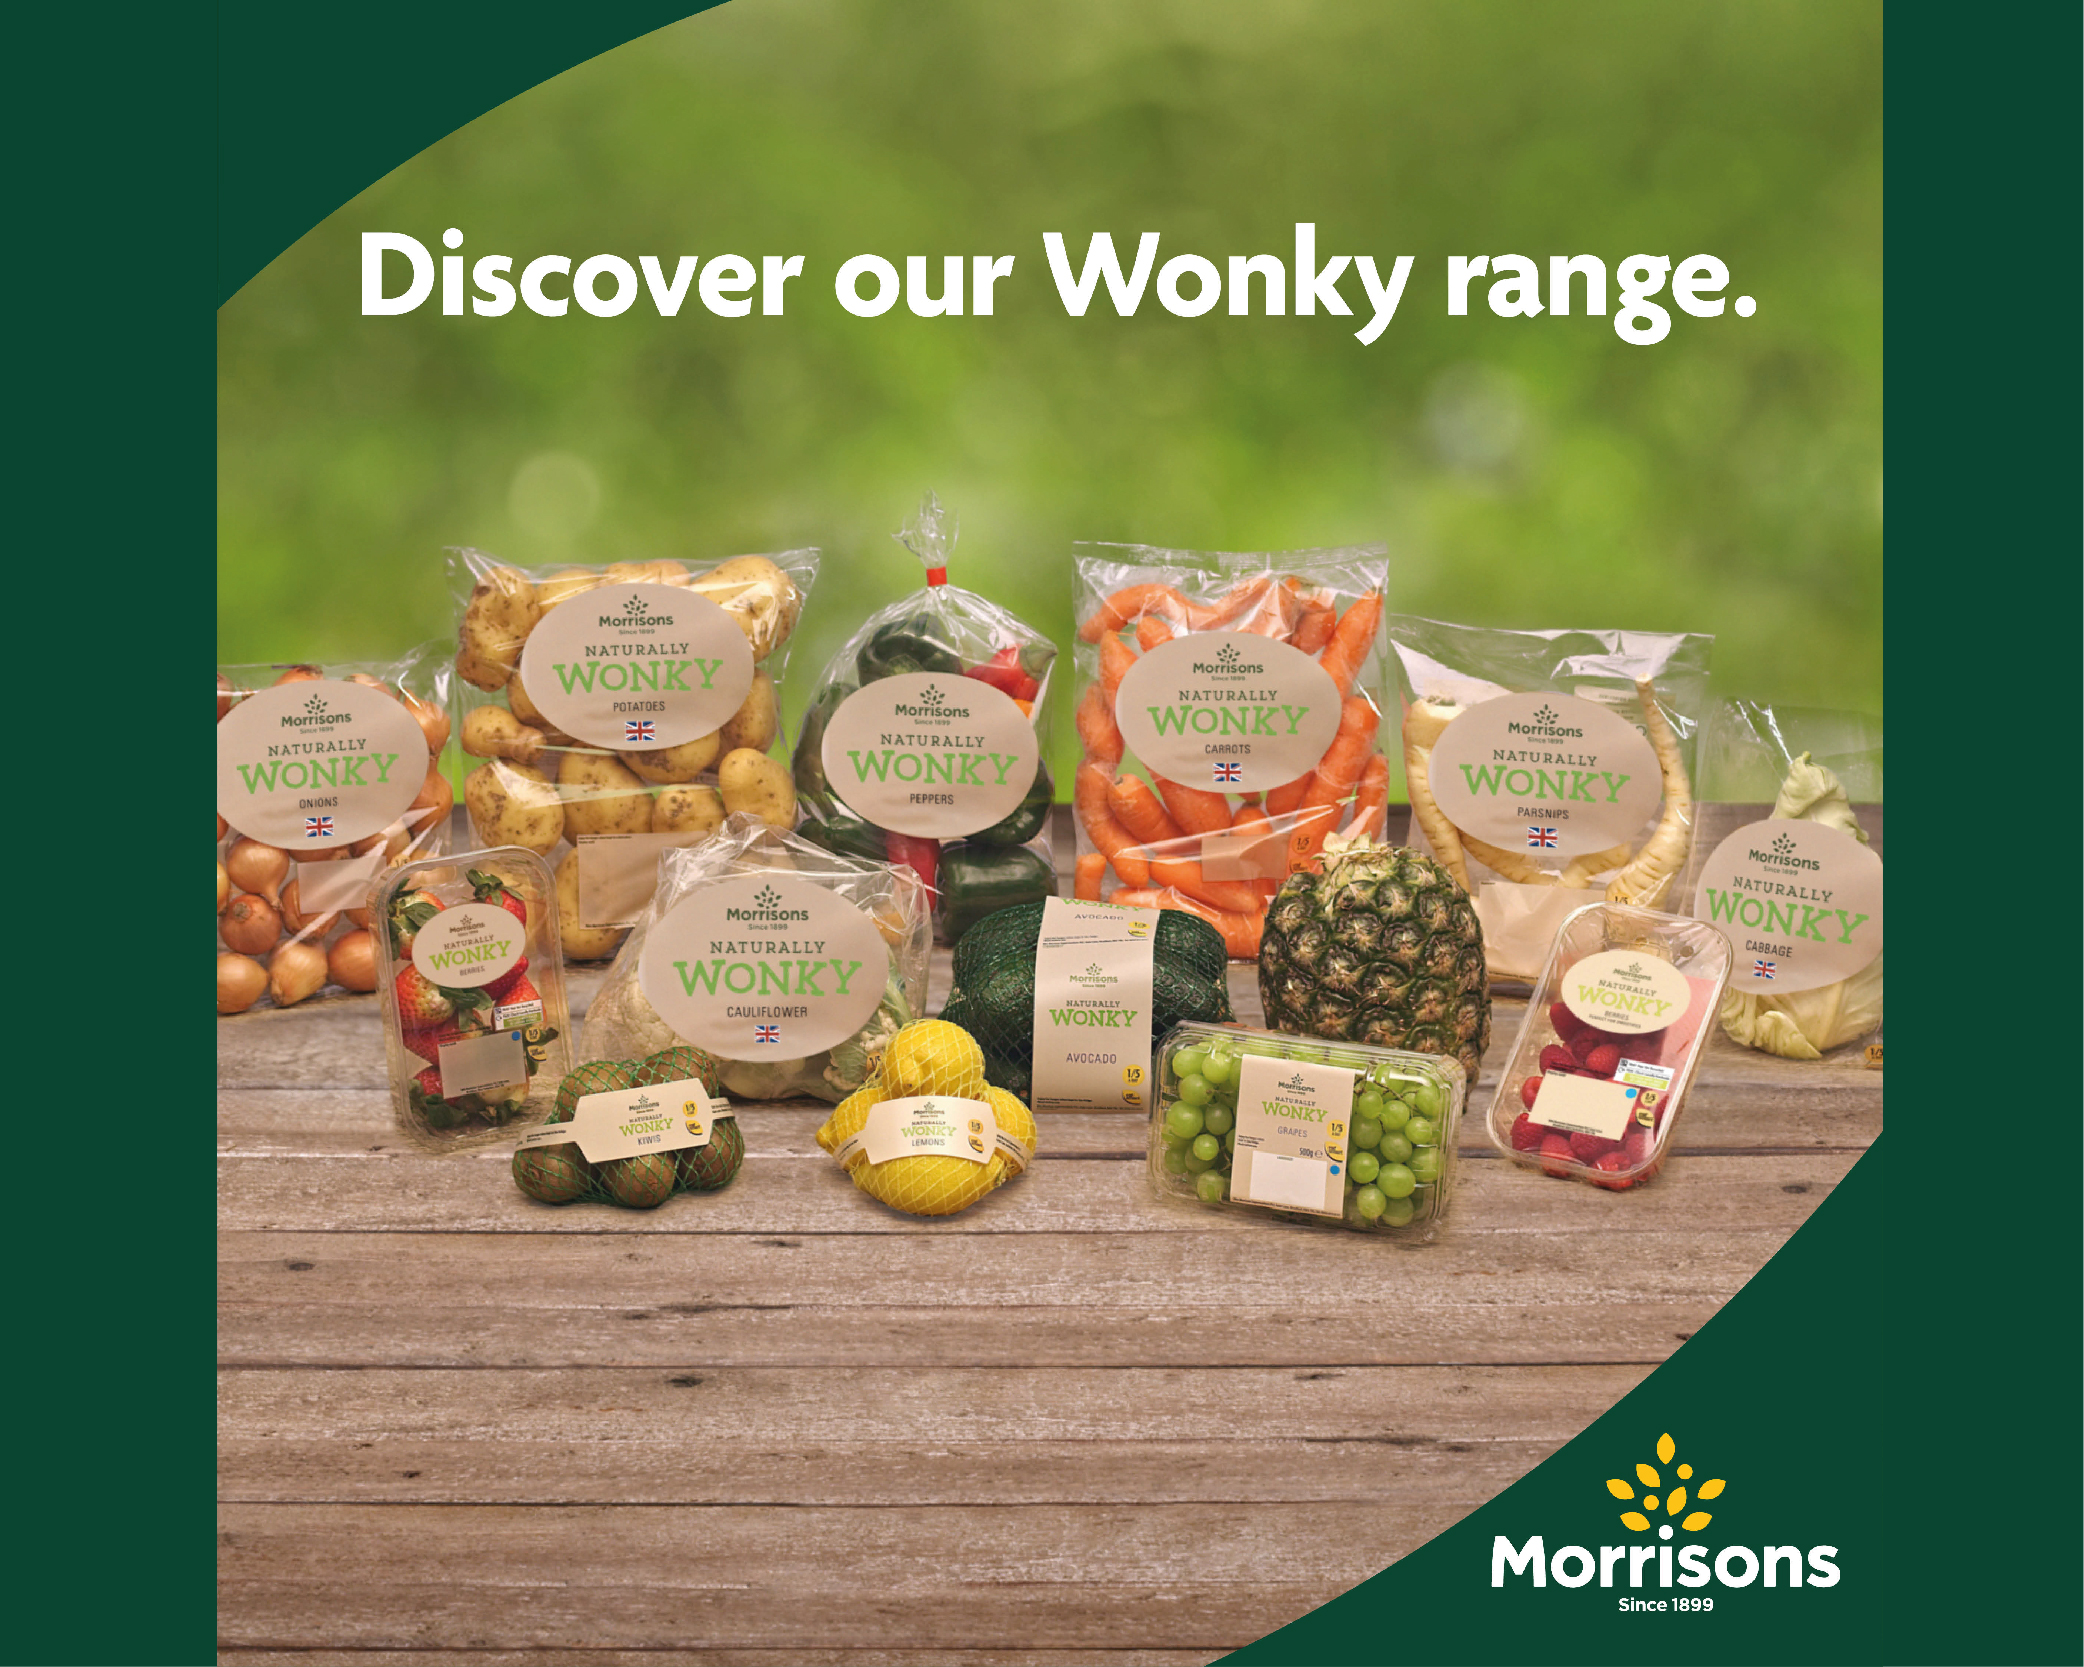 Wonky range now in store at Morrisons Daily! -